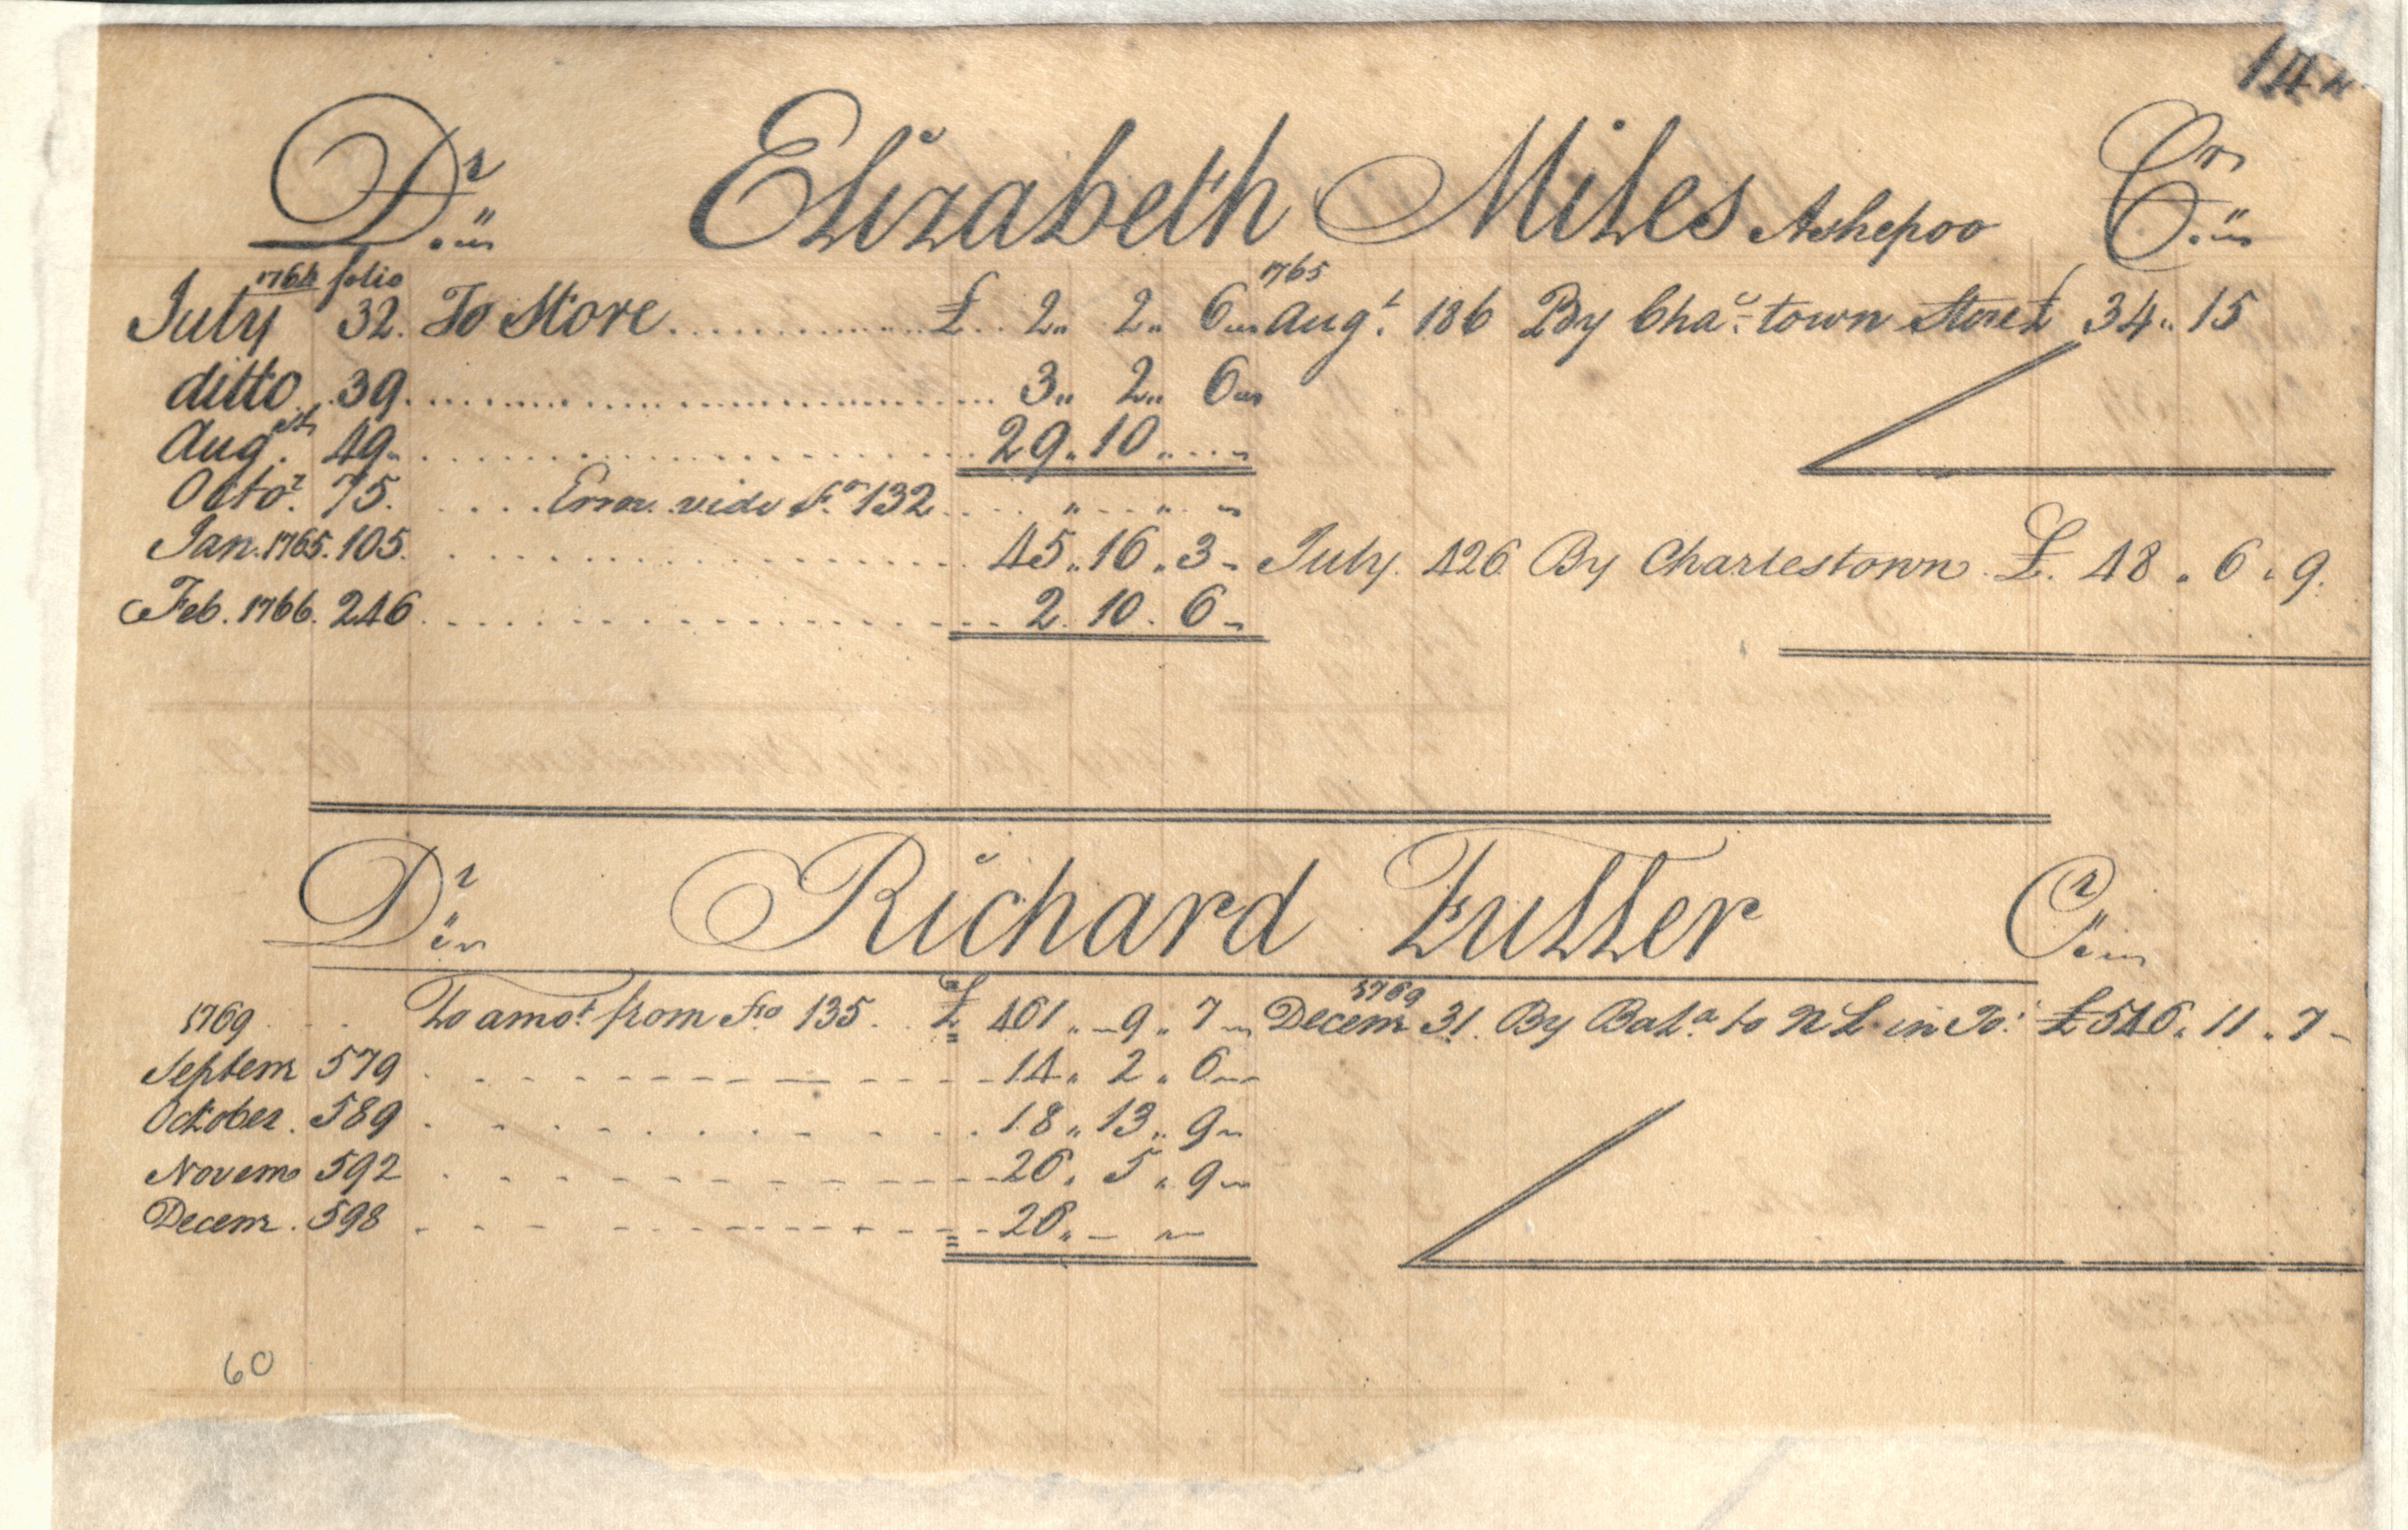 Plowden Weston's Business Ledger, page 142